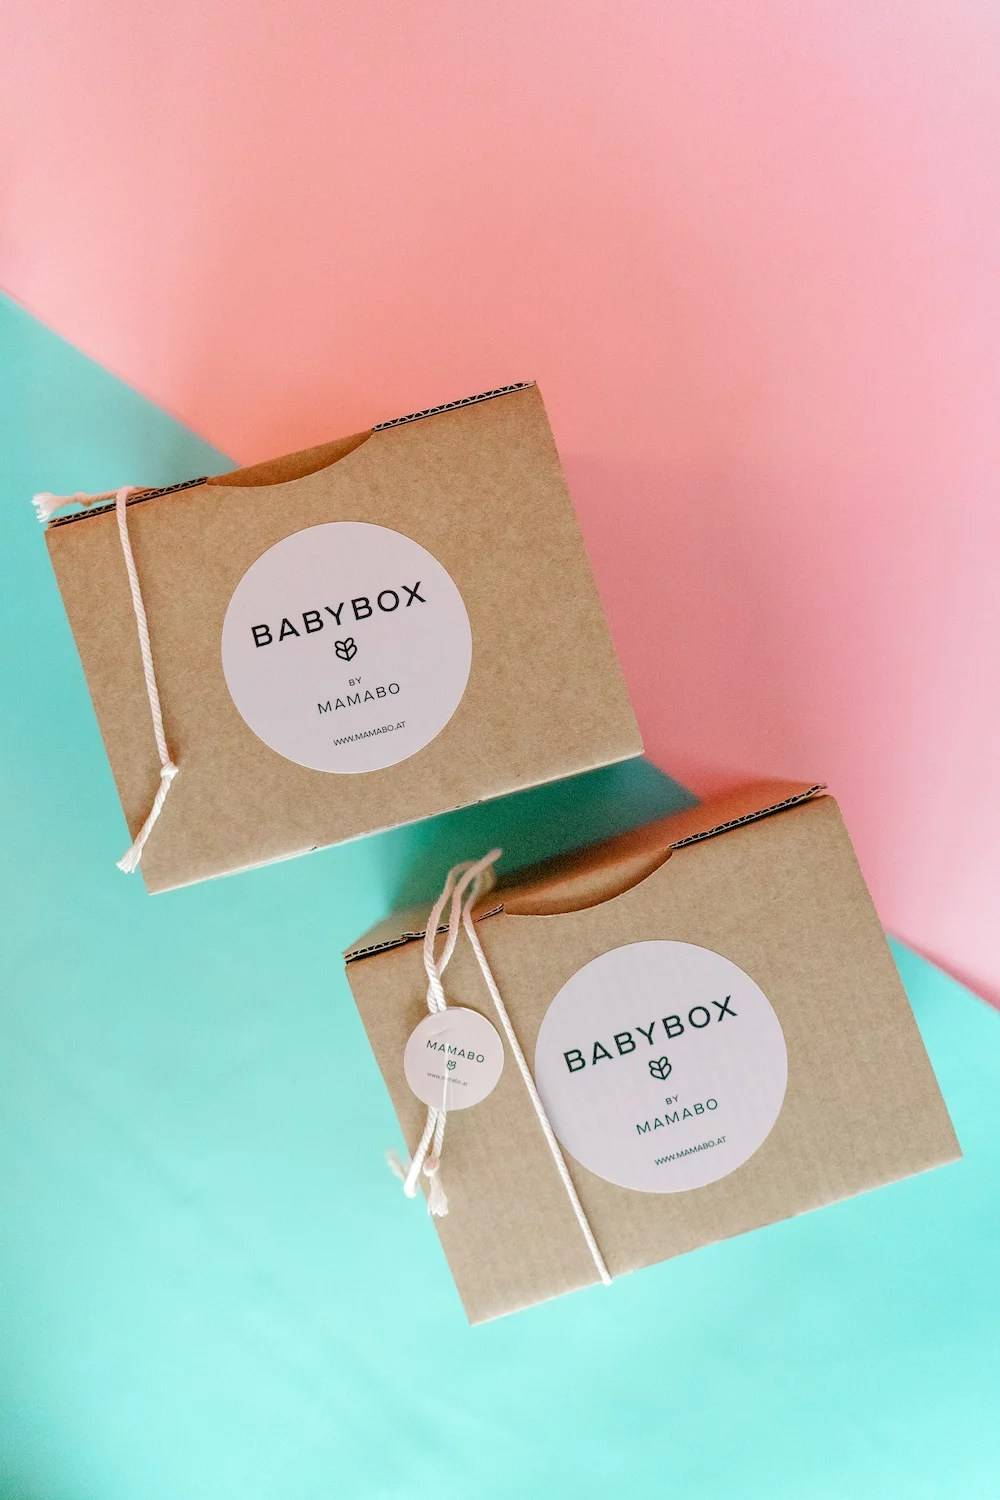 2 Babyboxen by Mamobo